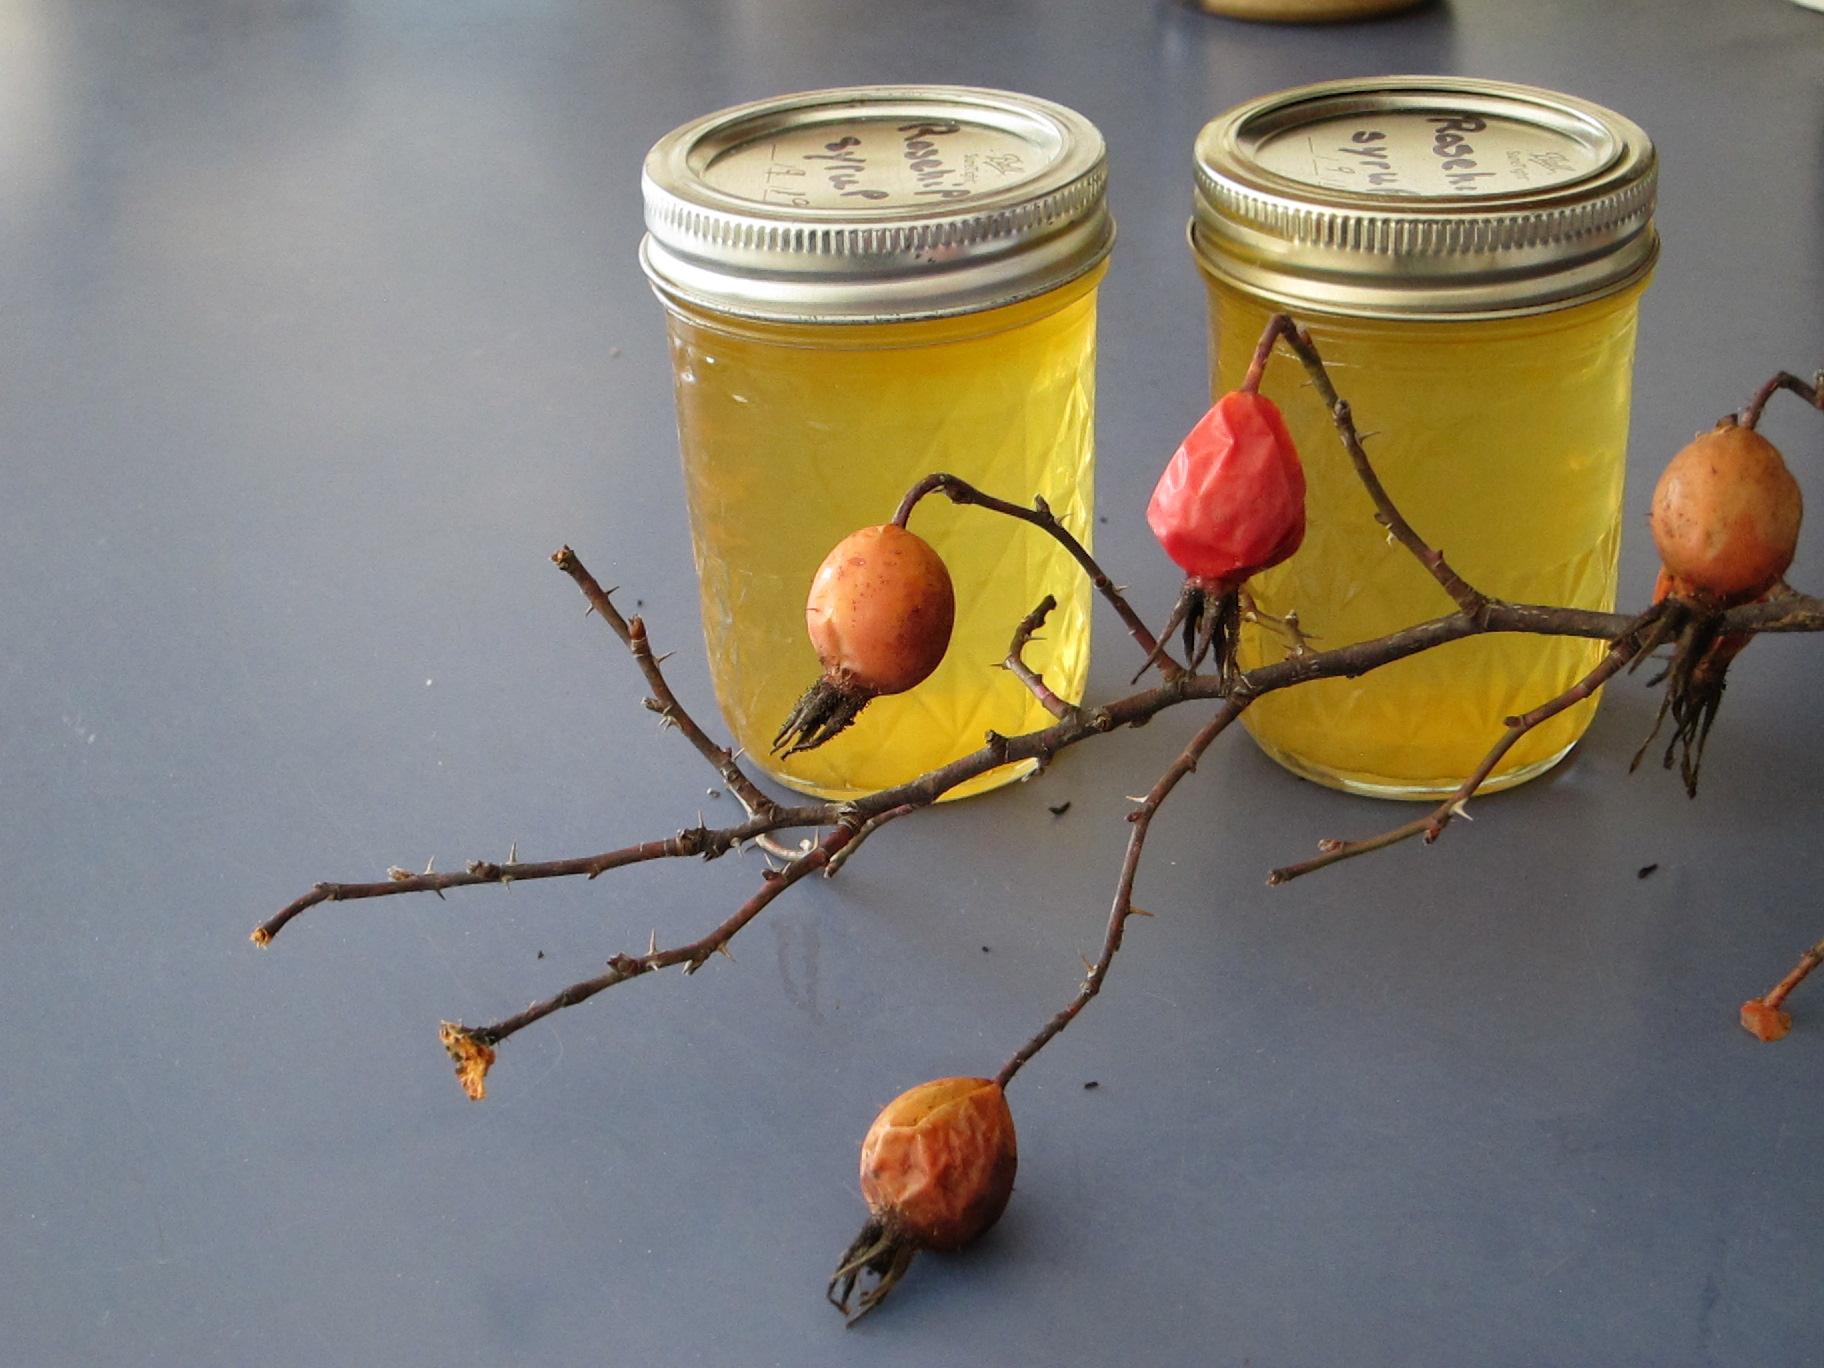 jars with yellow syrup and rose hips